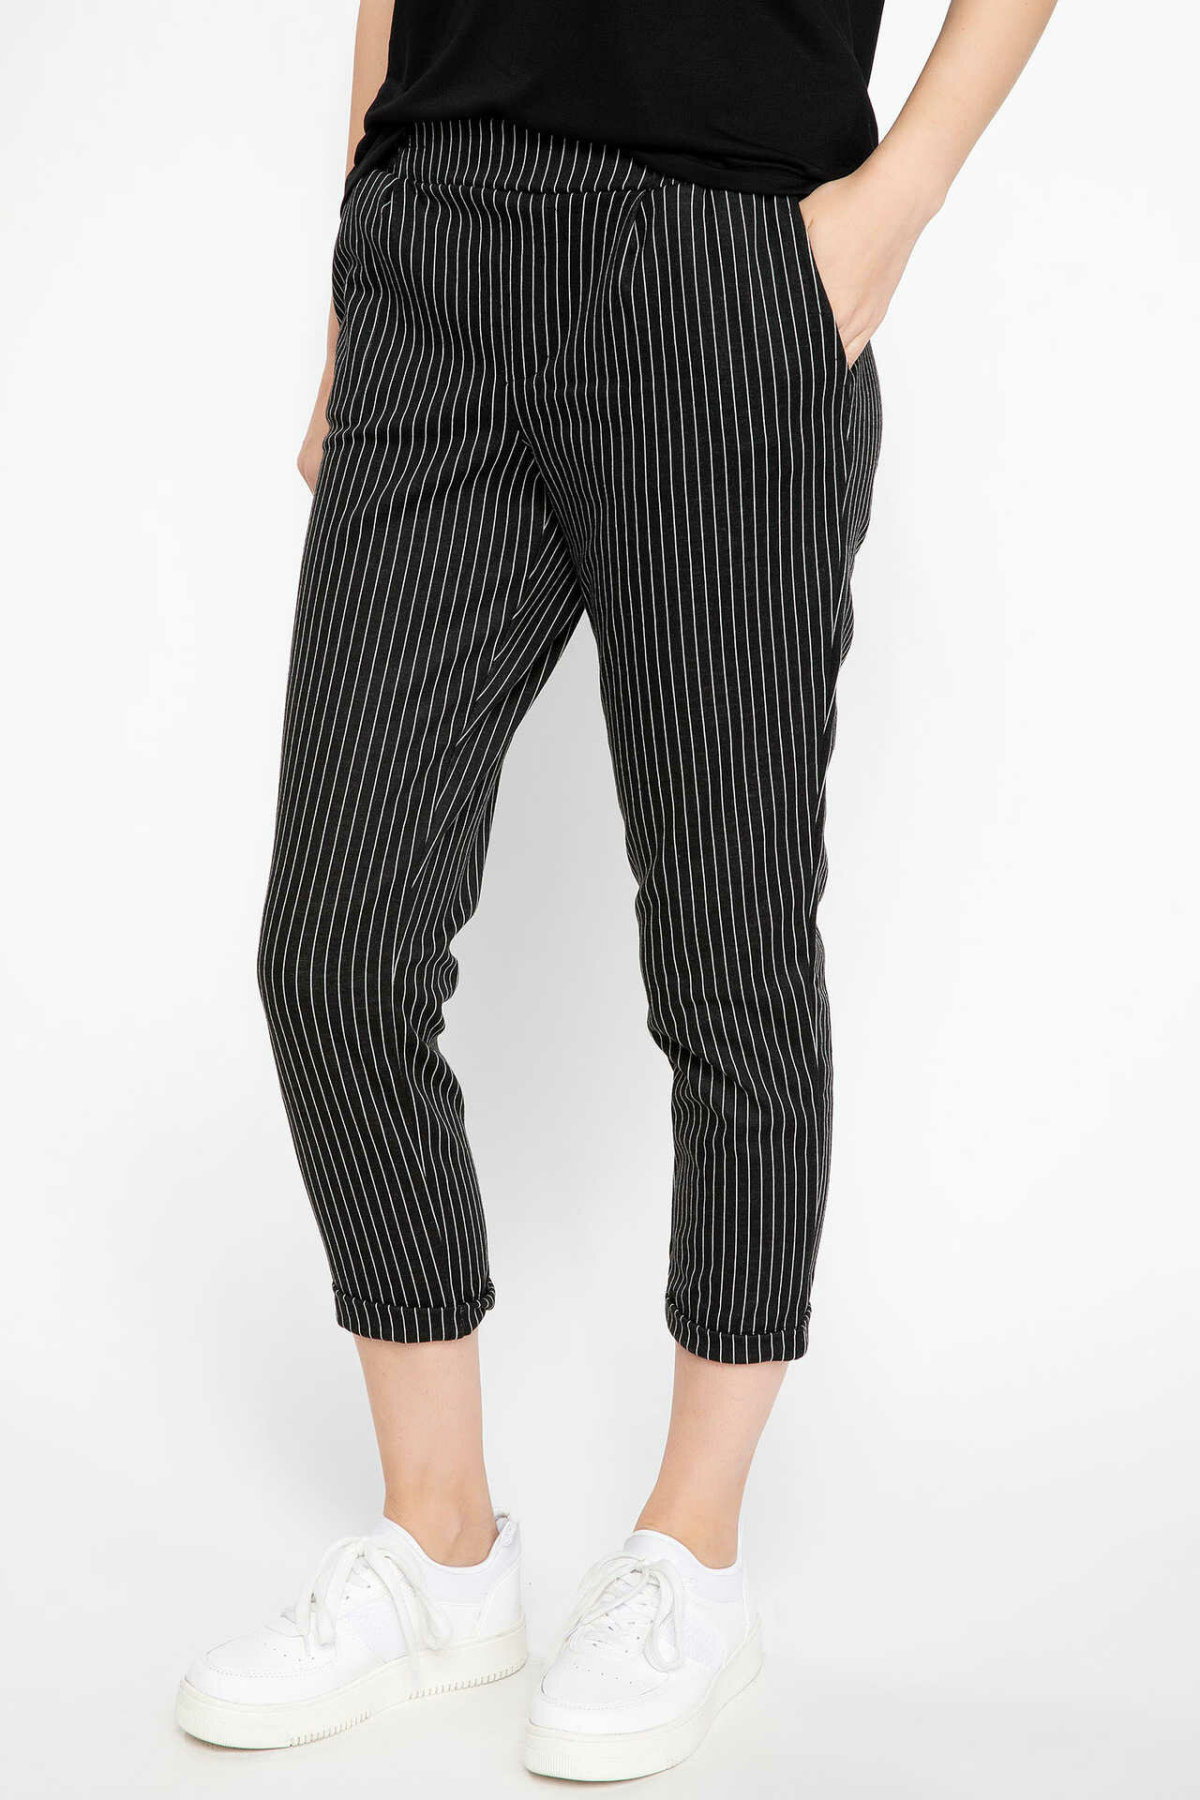 DeFacto Woman Casual Three Quarter Pants Black Striped Cargo Pants Women Mid-waist Bottoms Trousers-H7497AZ18AU